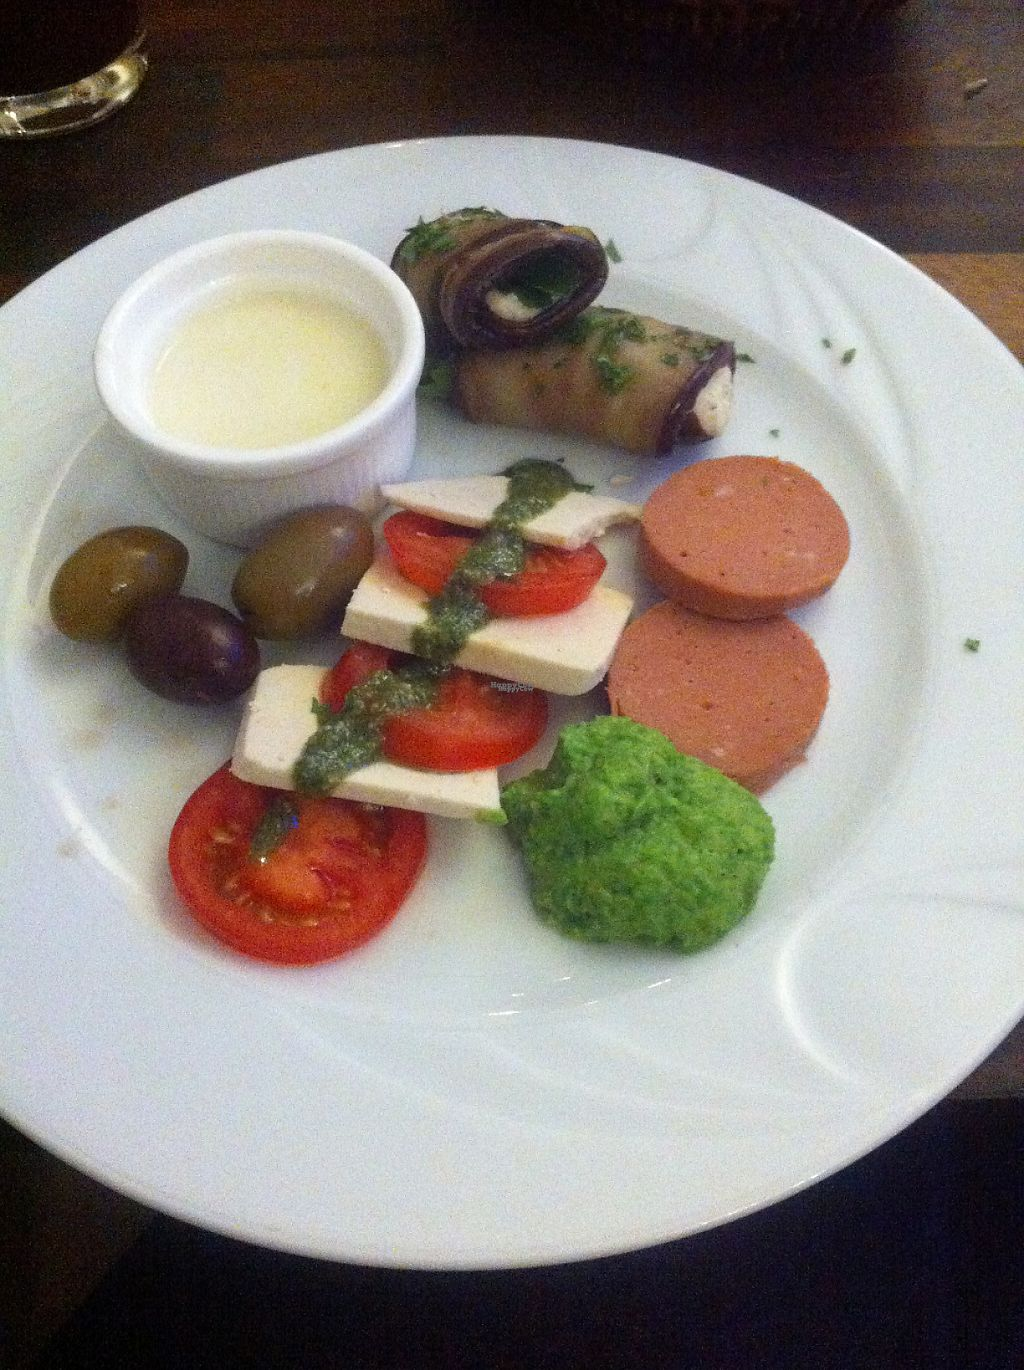 "Photo of CLOSED: Nordlys Cafe og Spisehus  by <a href=""/members/profile/piffelina"">piffelina</a> <br/>Went to Nordlys for a 3-course dinner. The starter was my favorite - nothing short of excellent <br/> December 22, 2016  - <a href='/contact/abuse/image/77907/204010'>Report</a>"